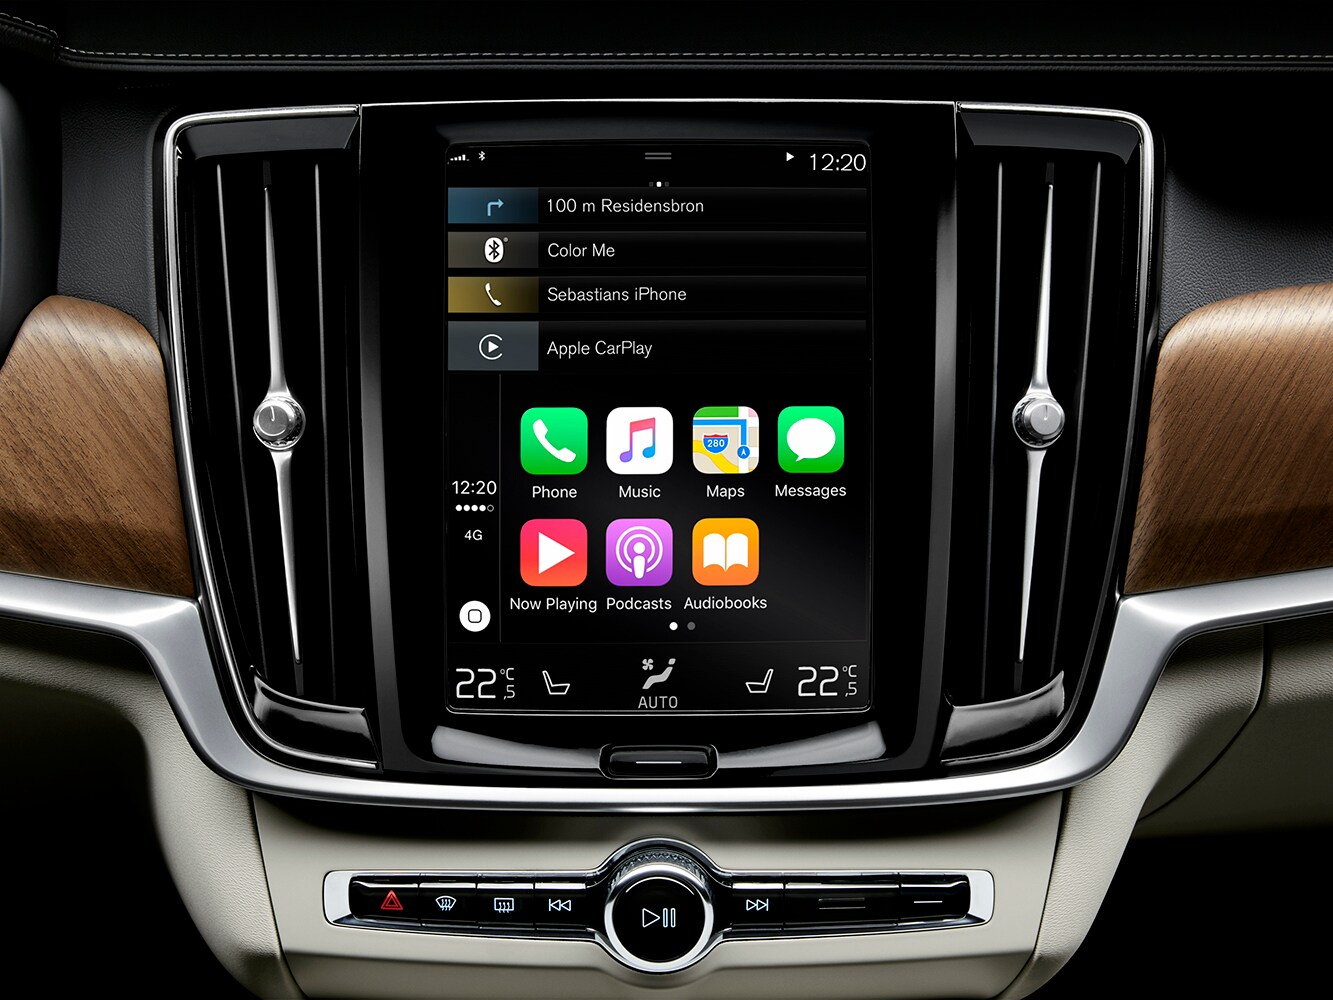 Close up of the infotainment system in the Volvo S90